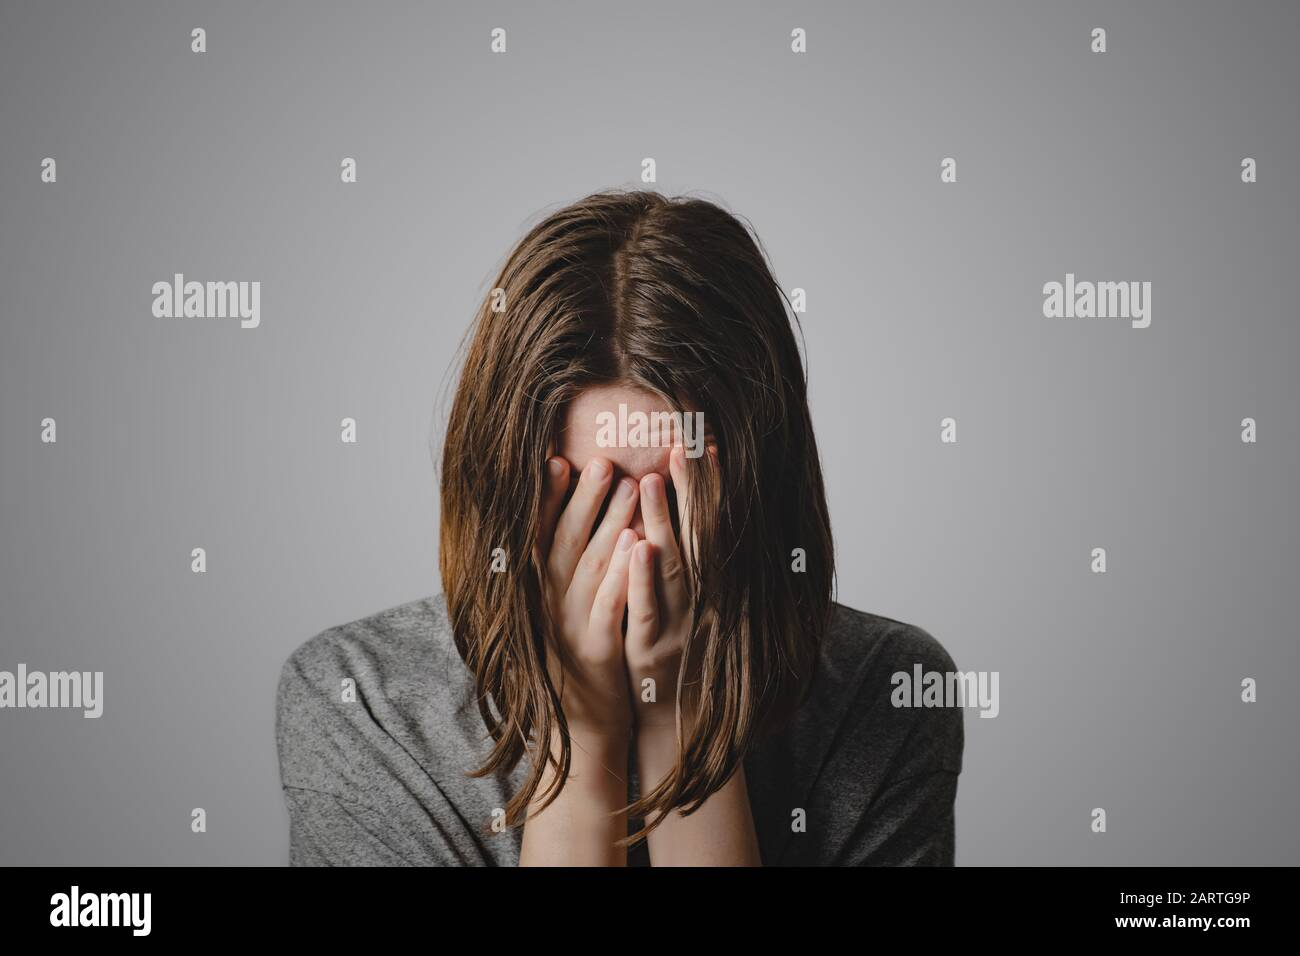 Woman covers face in hands. Concept of despair, depression, loss or mental condition Stock Photo